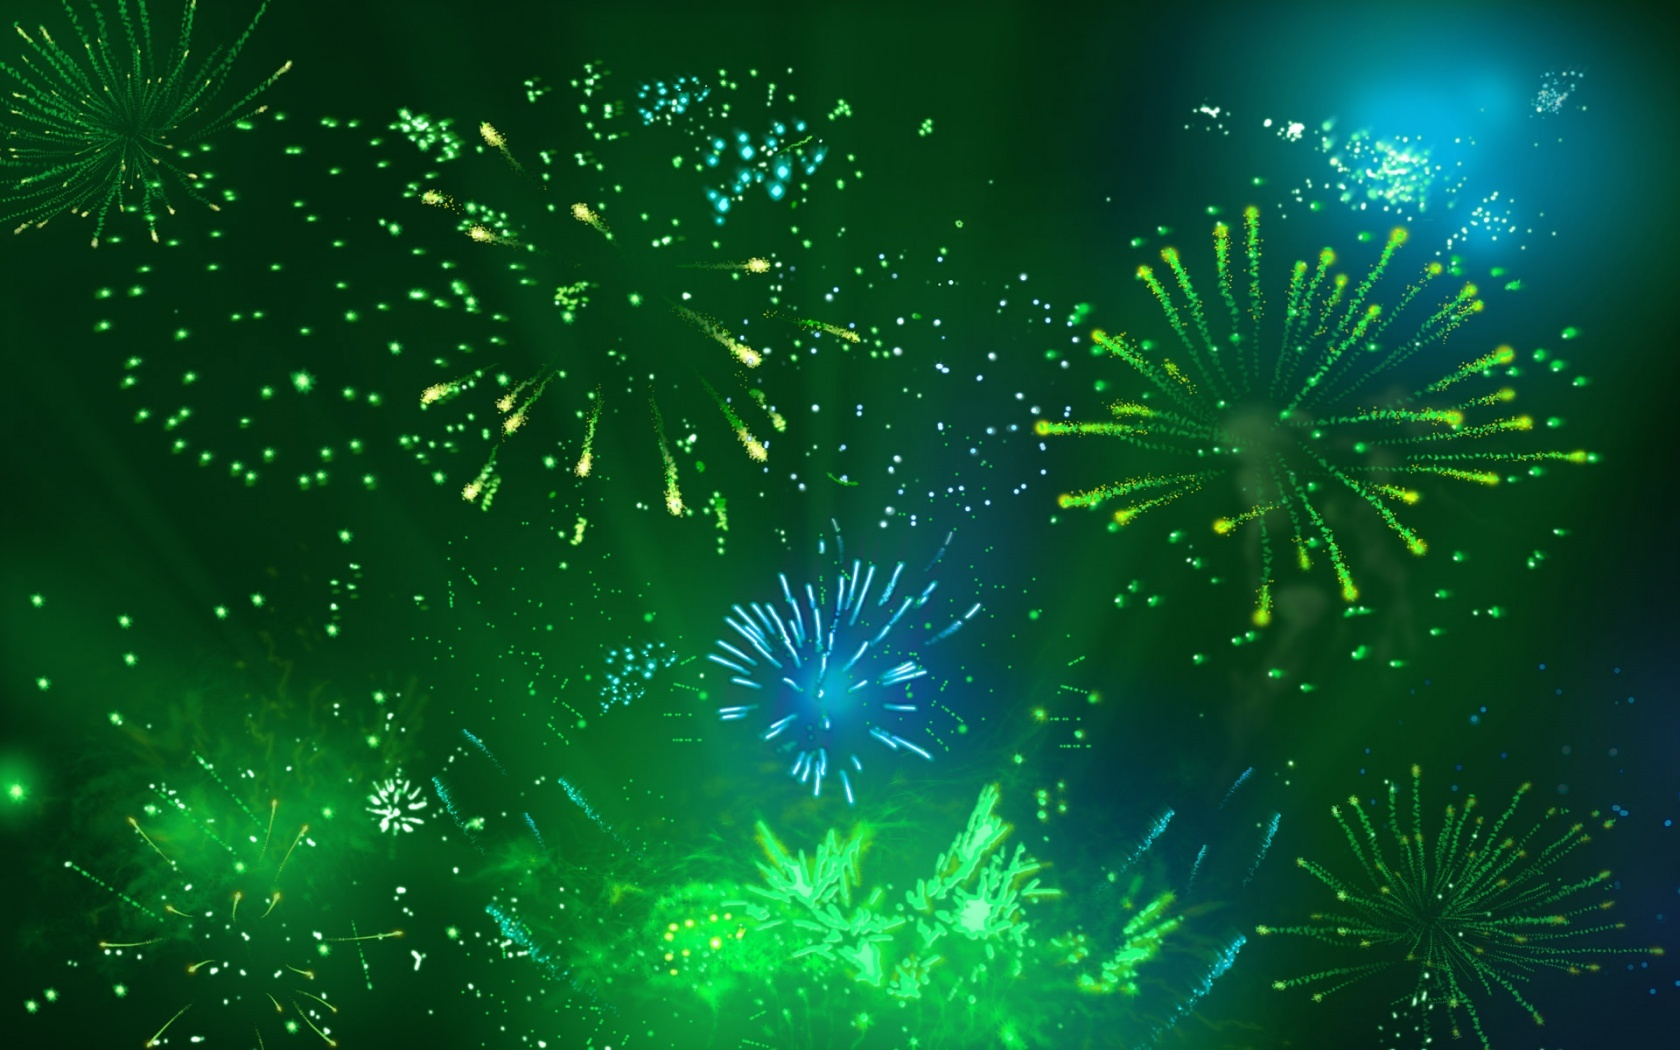 Abstract wallpapers hd fireworks green hd desktop wallpapers 4k hd abstract wallpapers hd fireworks green voltagebd Gallery